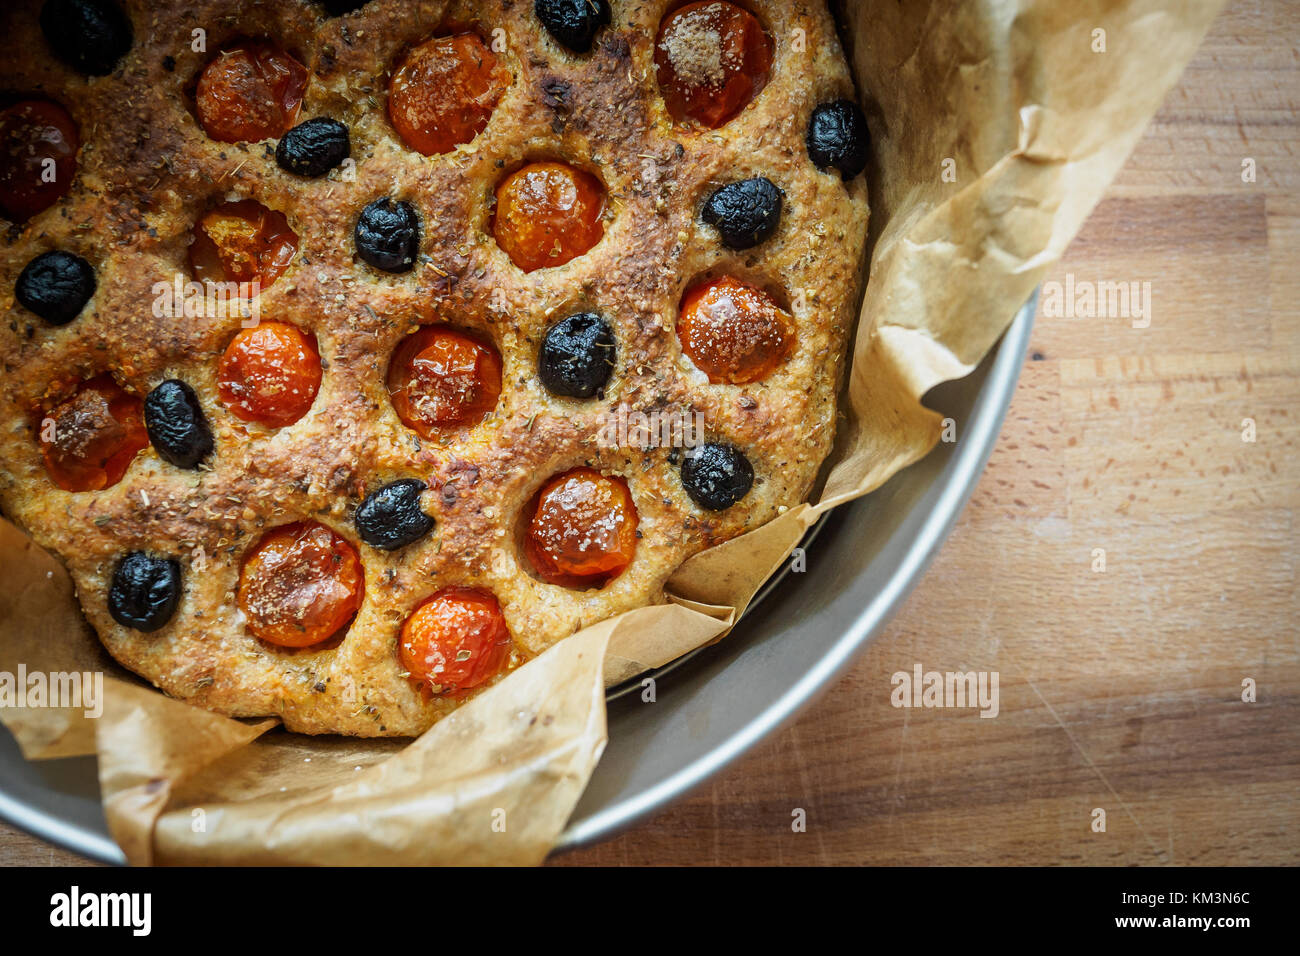 Close up of a typical Apulian focaccia in a tin tray on a wooden board. Flat lay. Landscape format. - Stock Image